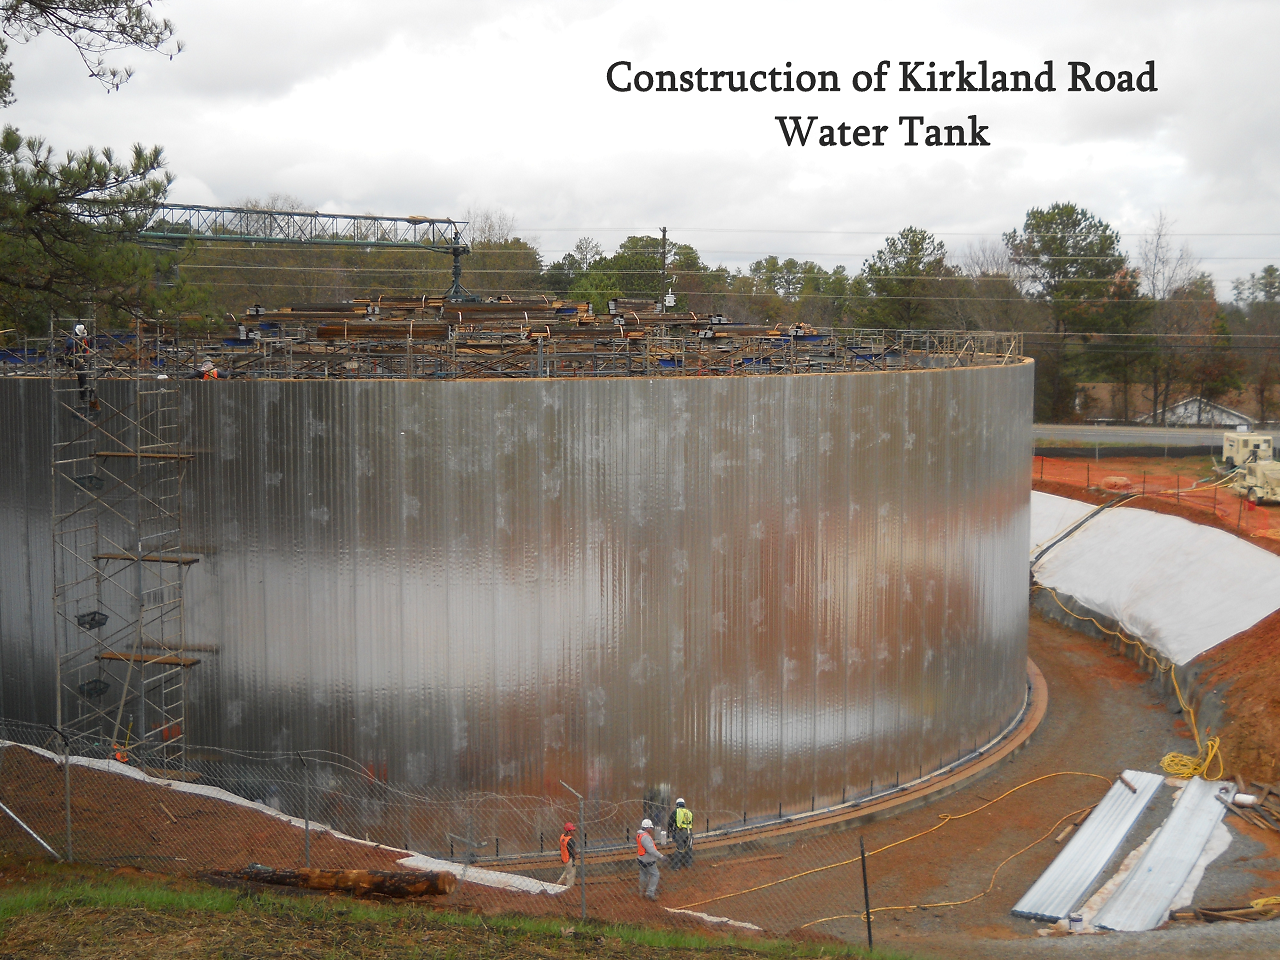 construction of kirkland road water tank scene